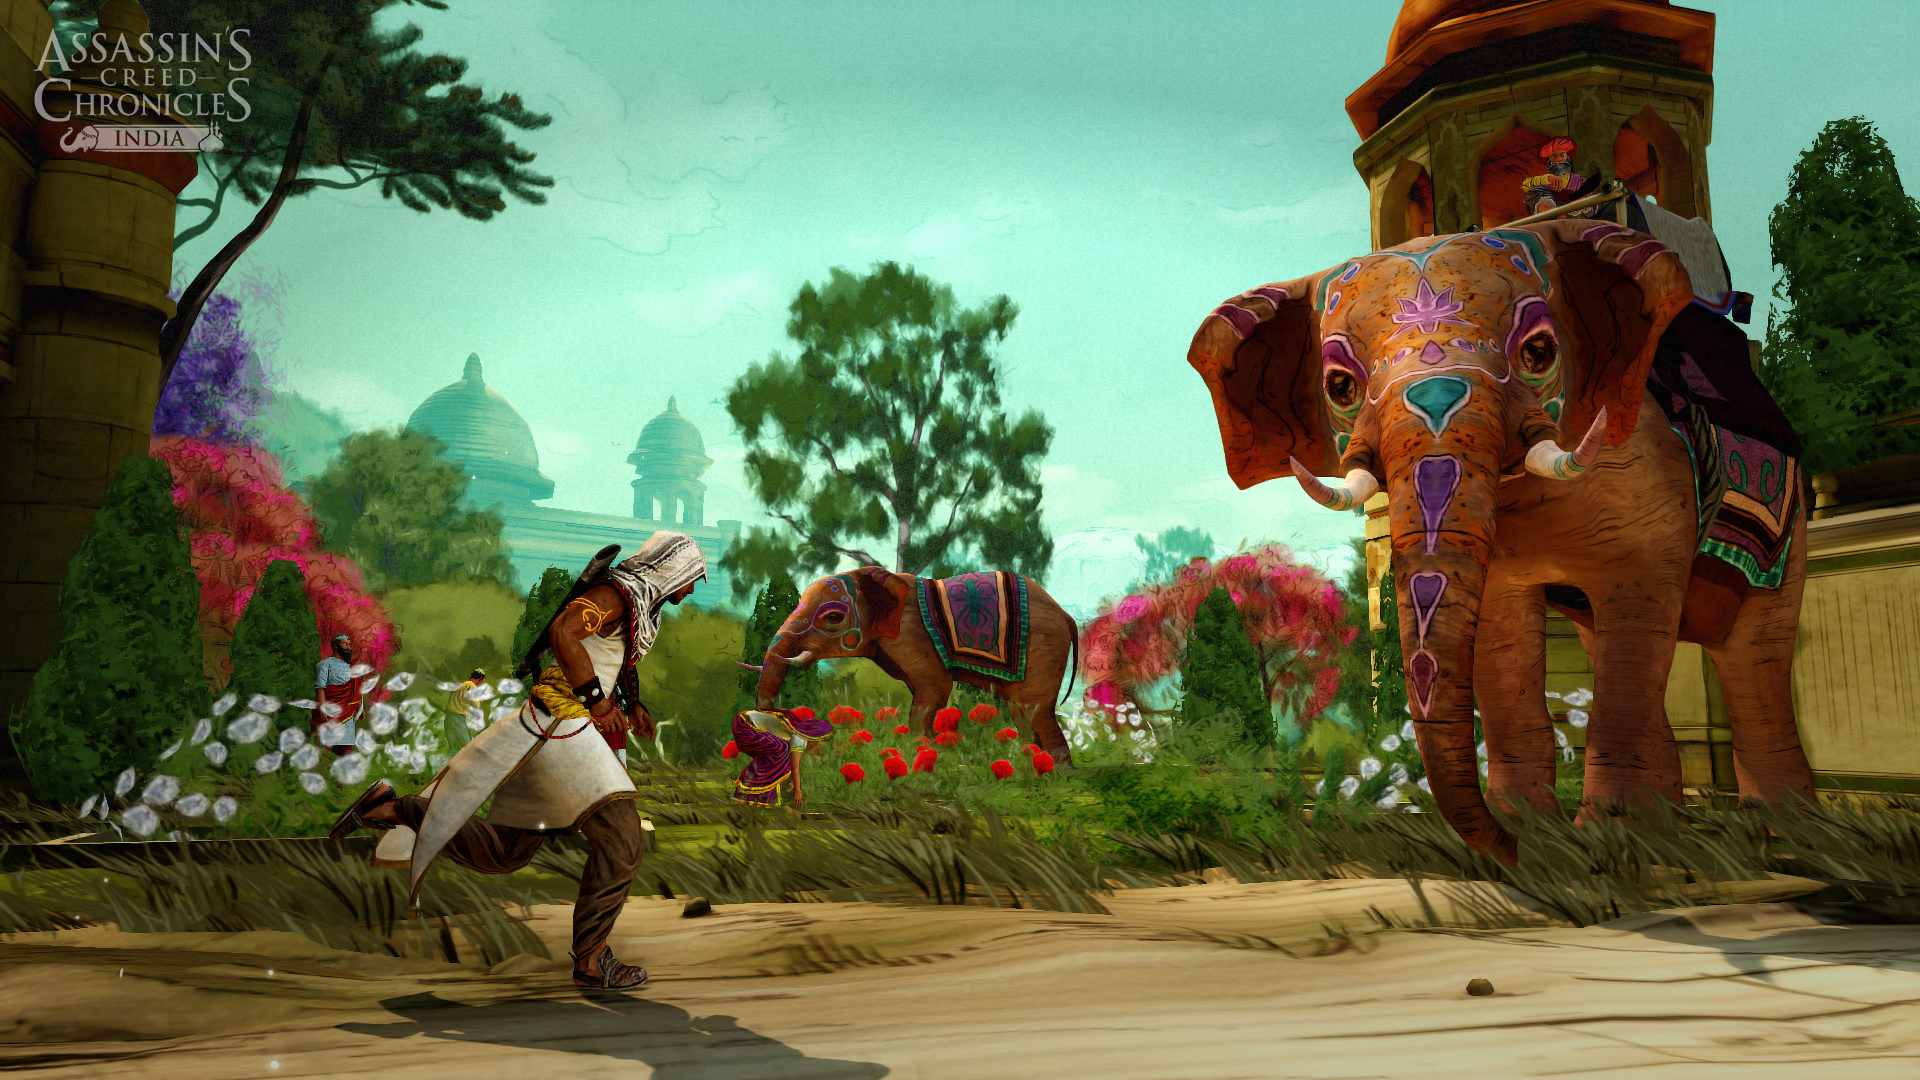 assassins-creed-chronicles-india-review-04